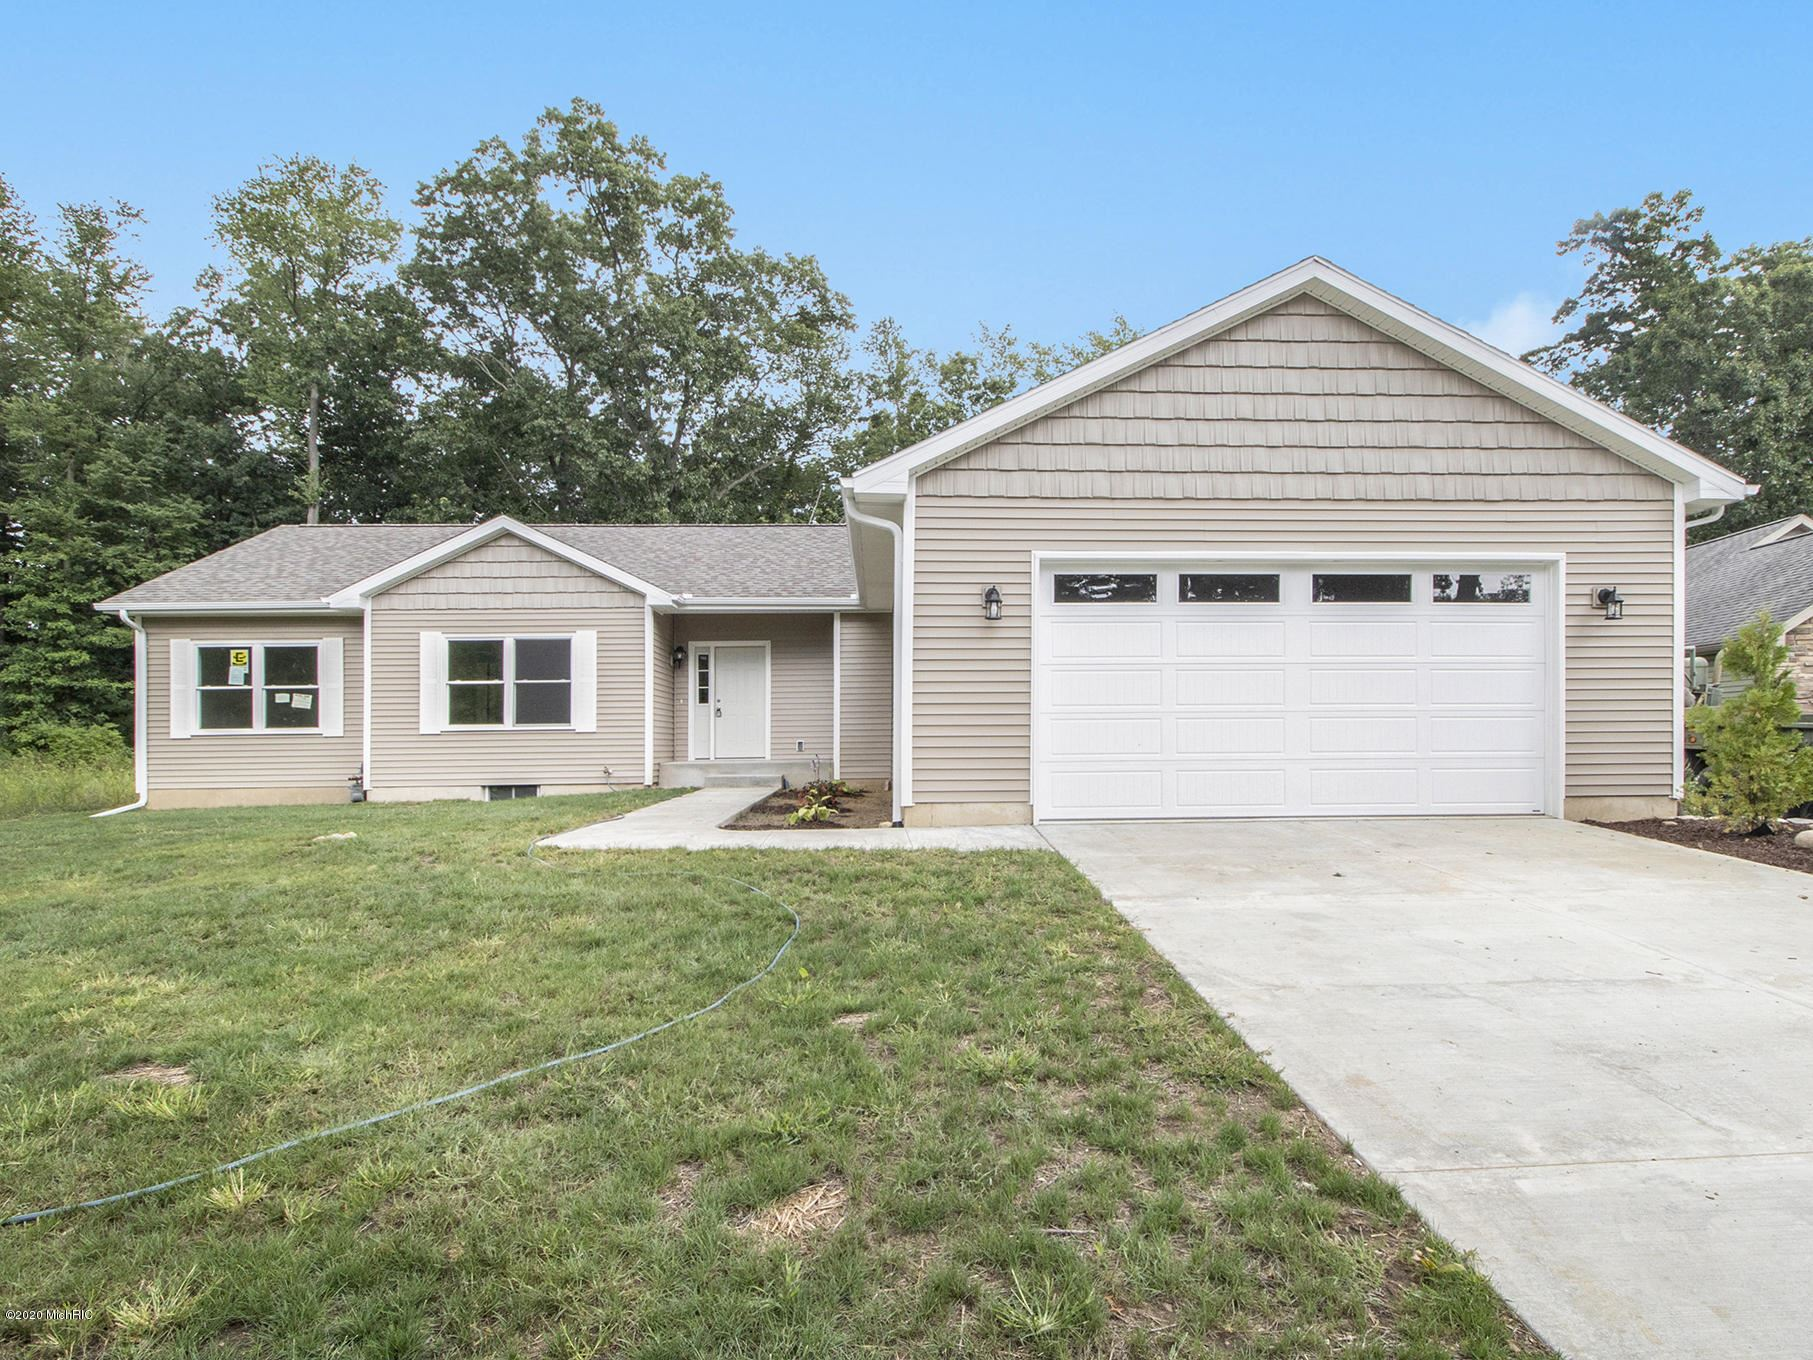 70333 Lakeview Drive, Edwardsburg, MI 49112 - MLS#: 19059013